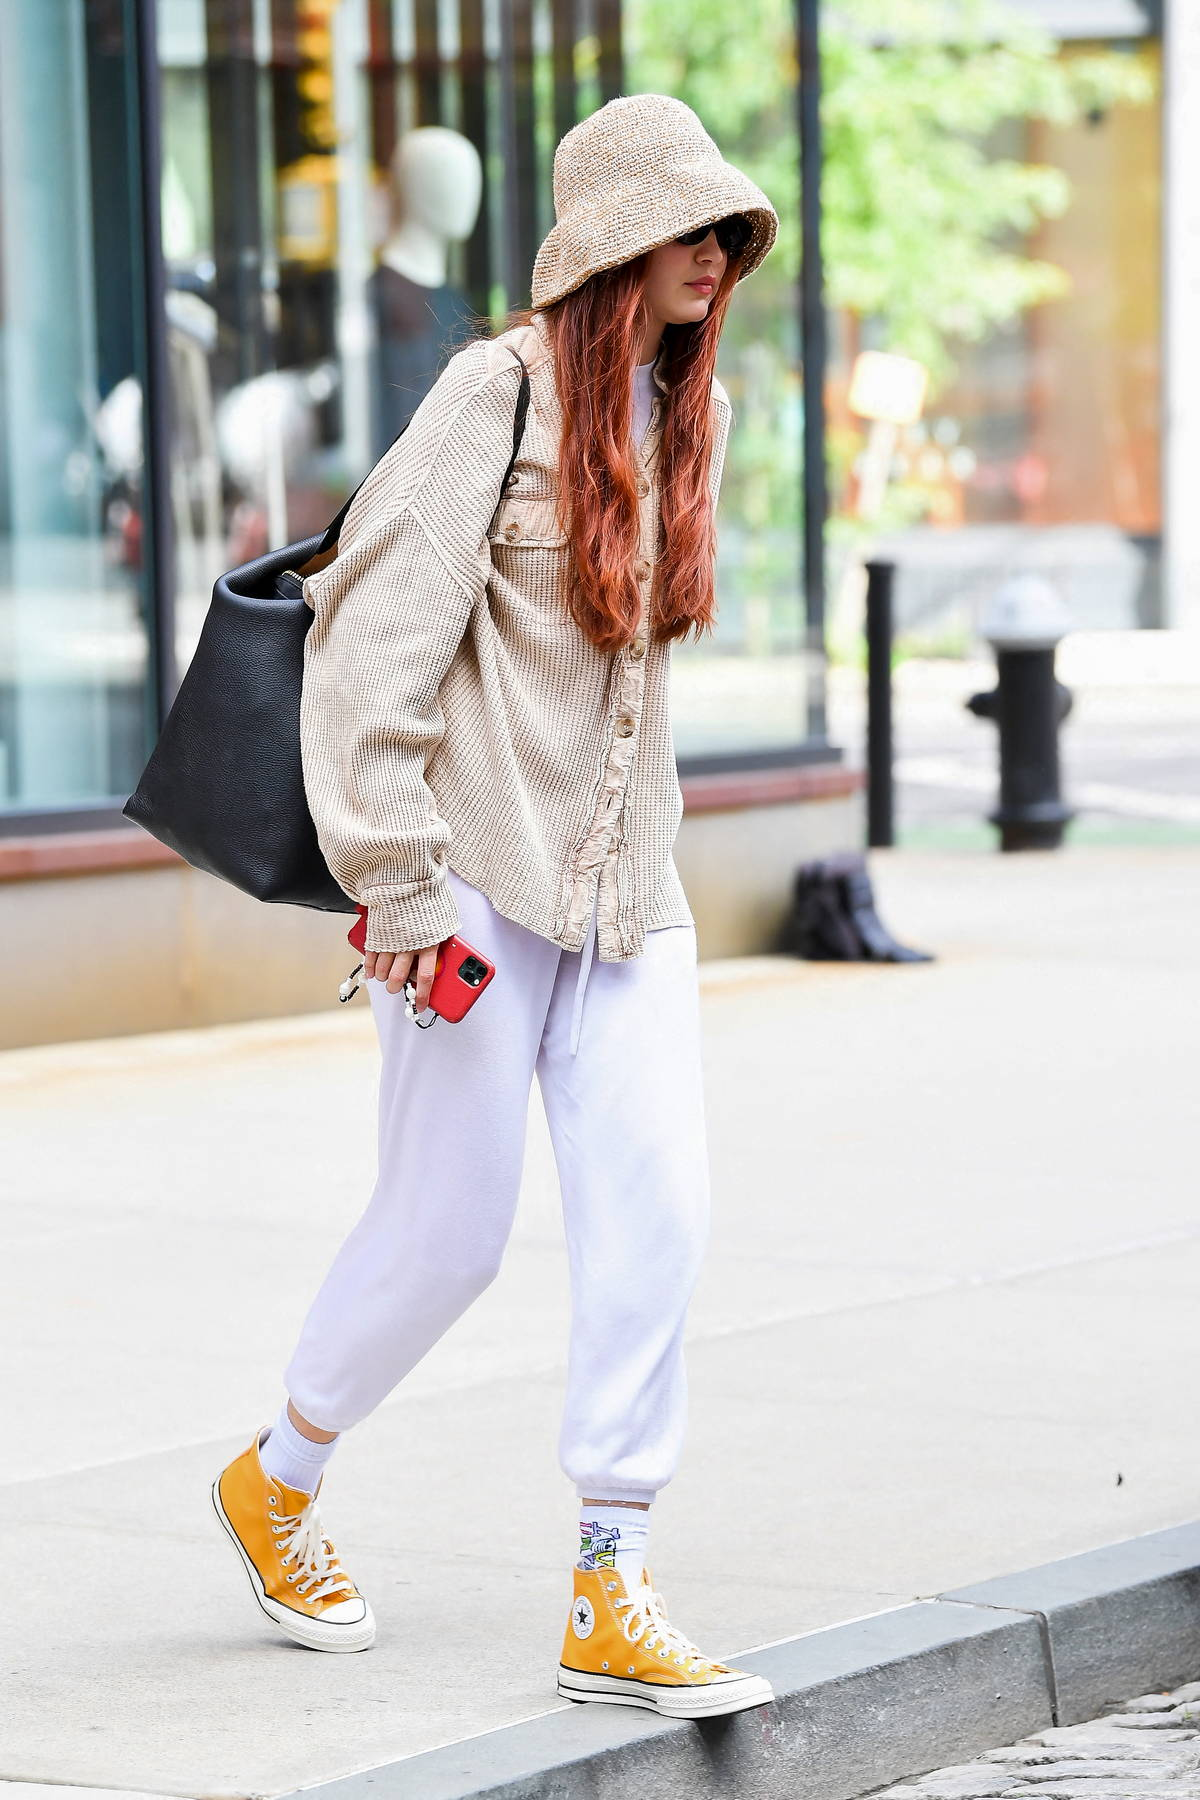 Gigi Hadid wears a bucket hat with a beige shirt, white joggers and yellow converse while heading out in New York City